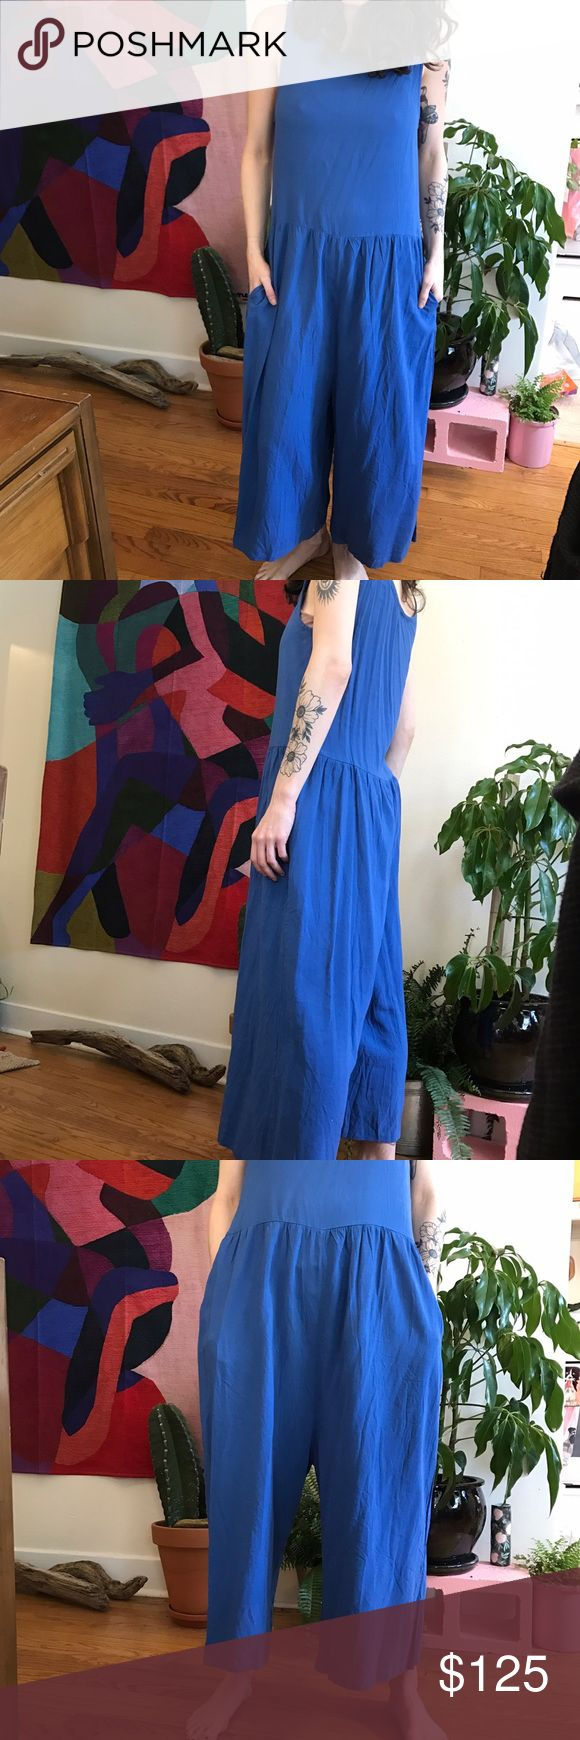 Super cute vintage linen jumpsuit --Beautiful wide leg linen and cotton jumper. Perfect for  the spring and summer.                                                     --Purchased at a Seattle consignment store, but don't wear it nearly enough as it should be worn! 🌞.             --Reminds me of the Ilana Kohn jumpsuit.                        --Small fraying in one spot pictured                                  --Pit to pit measurement 16inches ✨ Vintage Pants Jumpsuits & Rompers